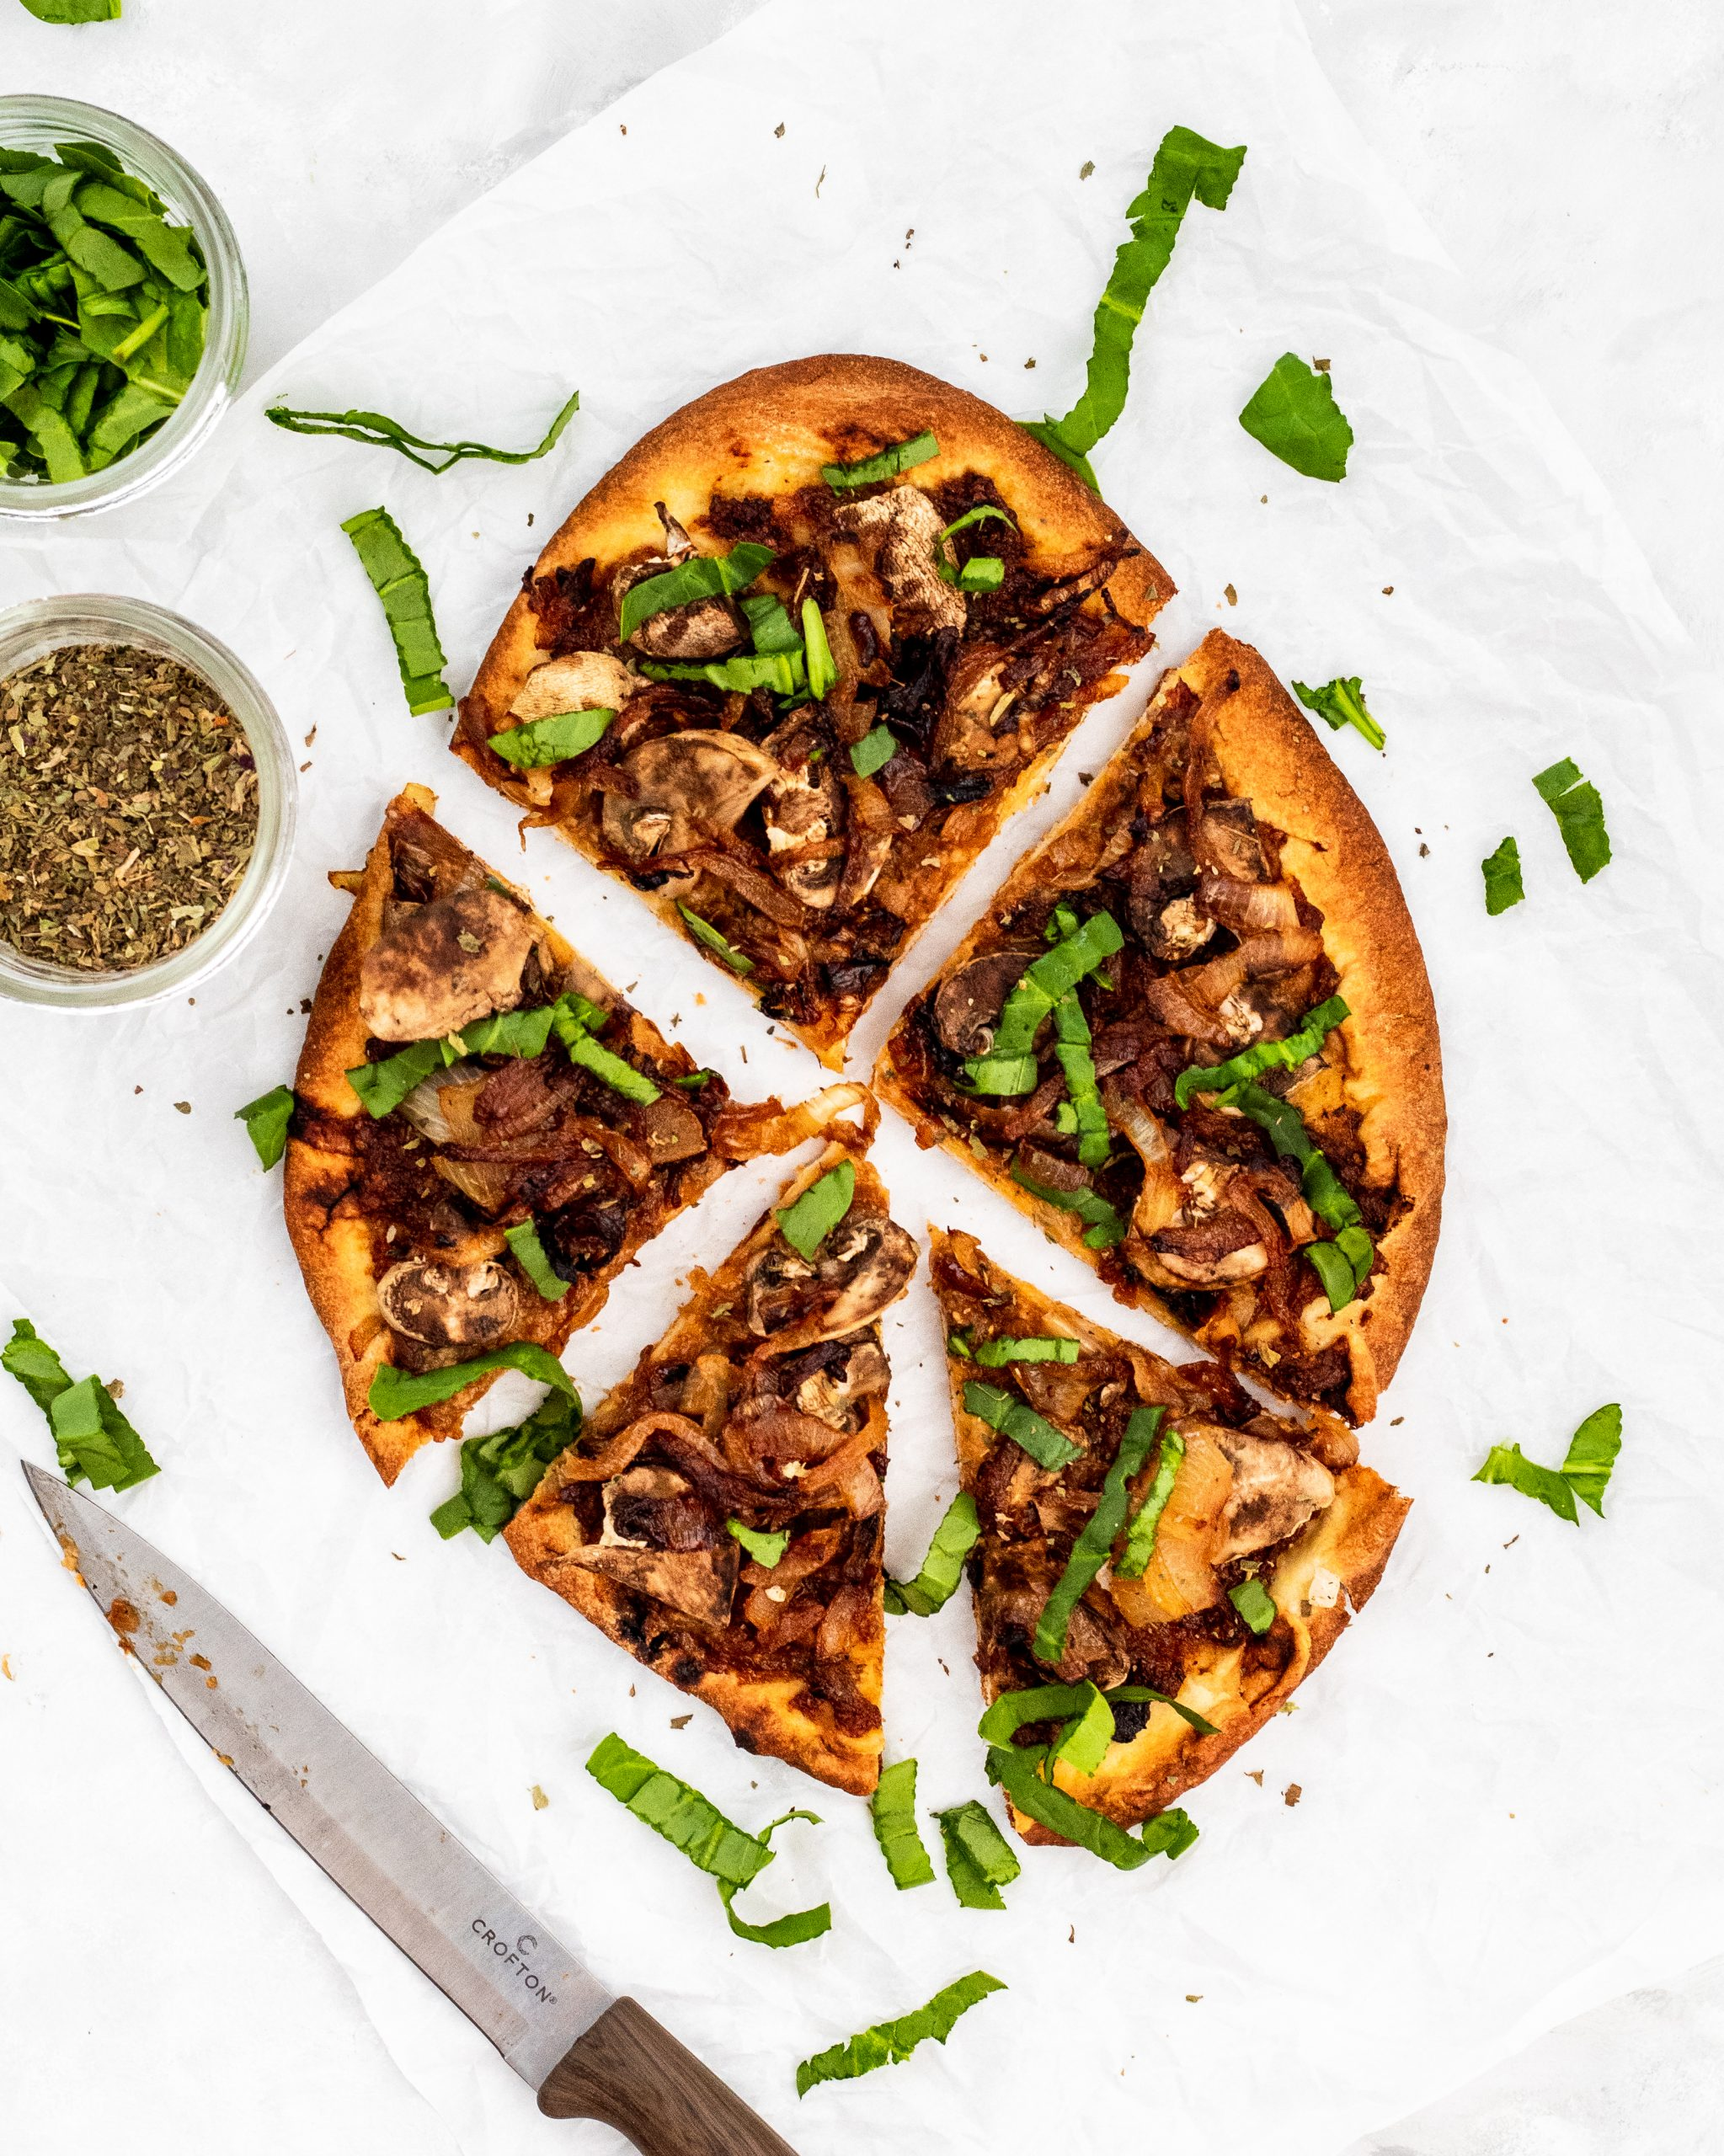 caramelized onion and mushroom naan bread pizza